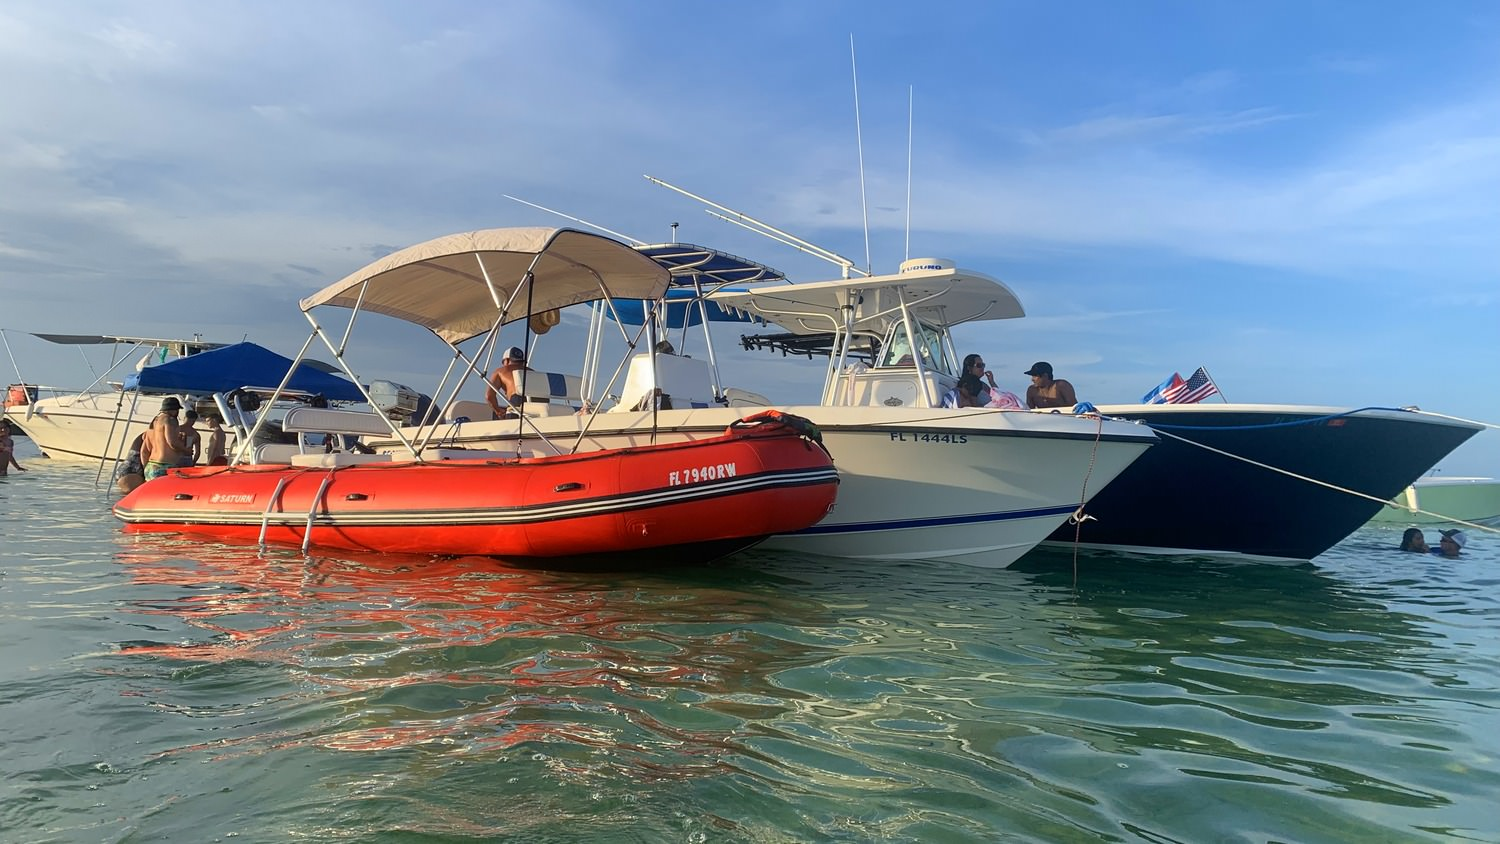 Customer's picture of SD488 boat